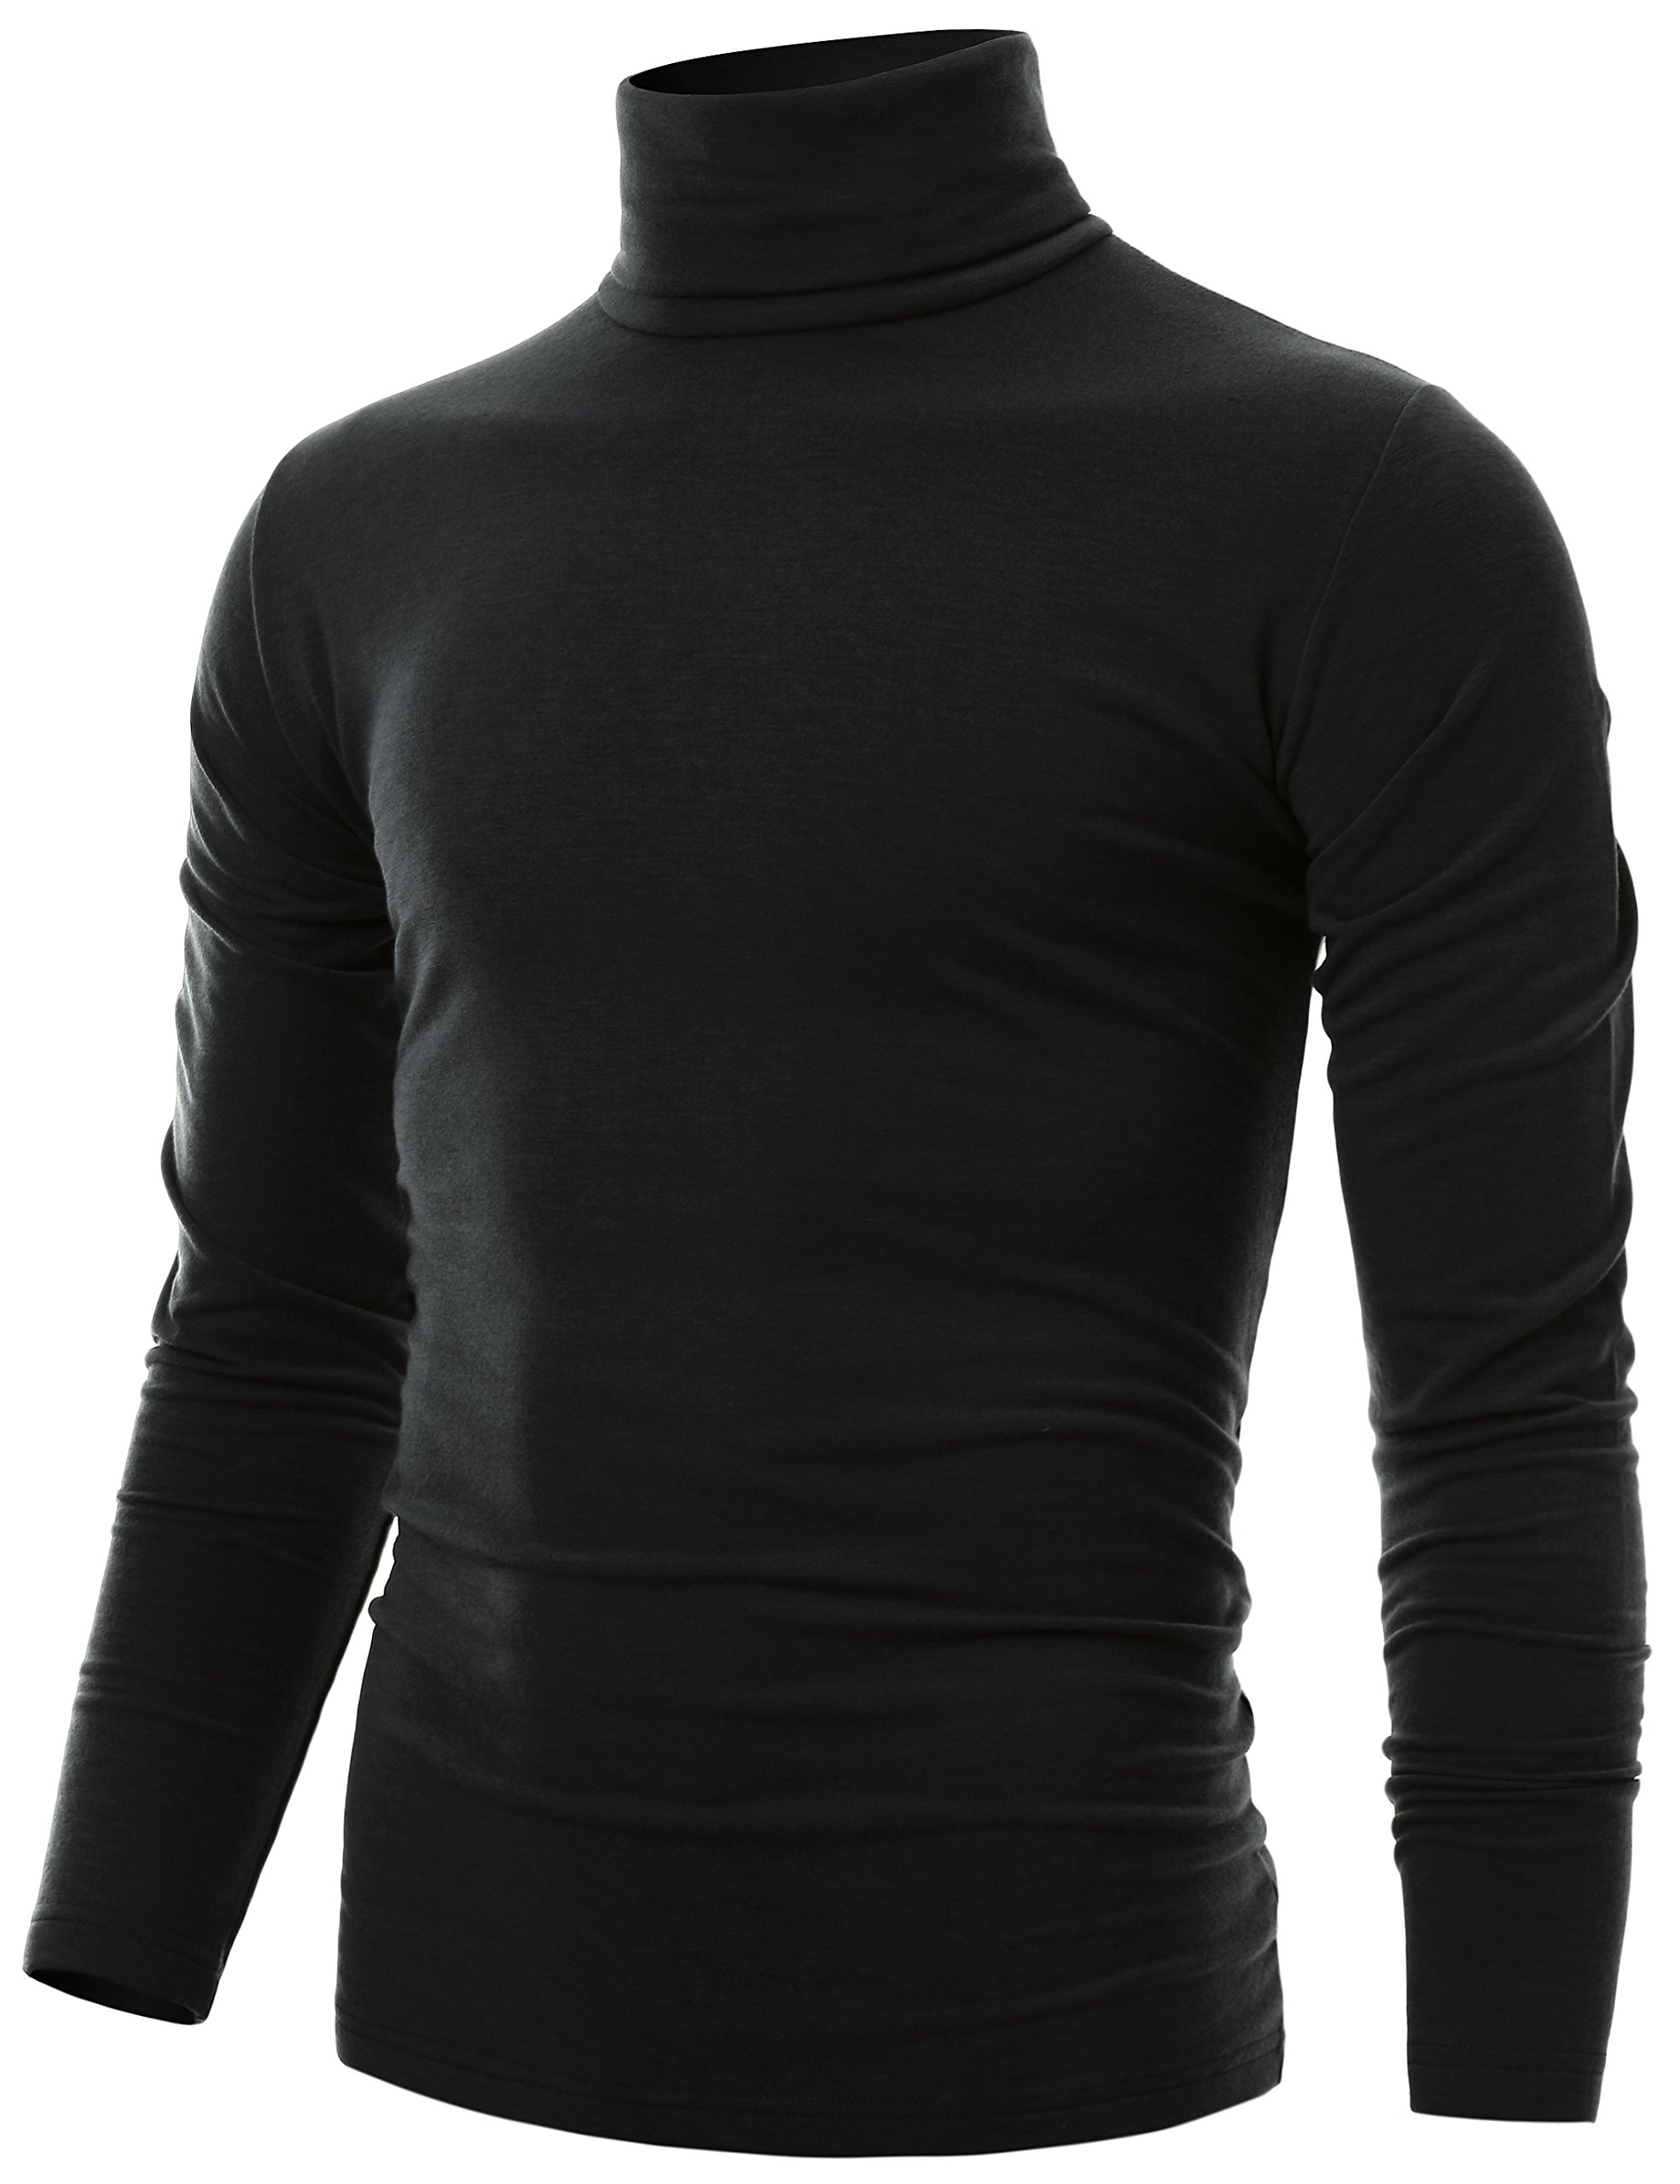 Ohoo Mens Slim Fit Soft Cotton Long Sleeve Pullover Lightweight Turtleneck/DCT001-BLACK-S by Ohoo